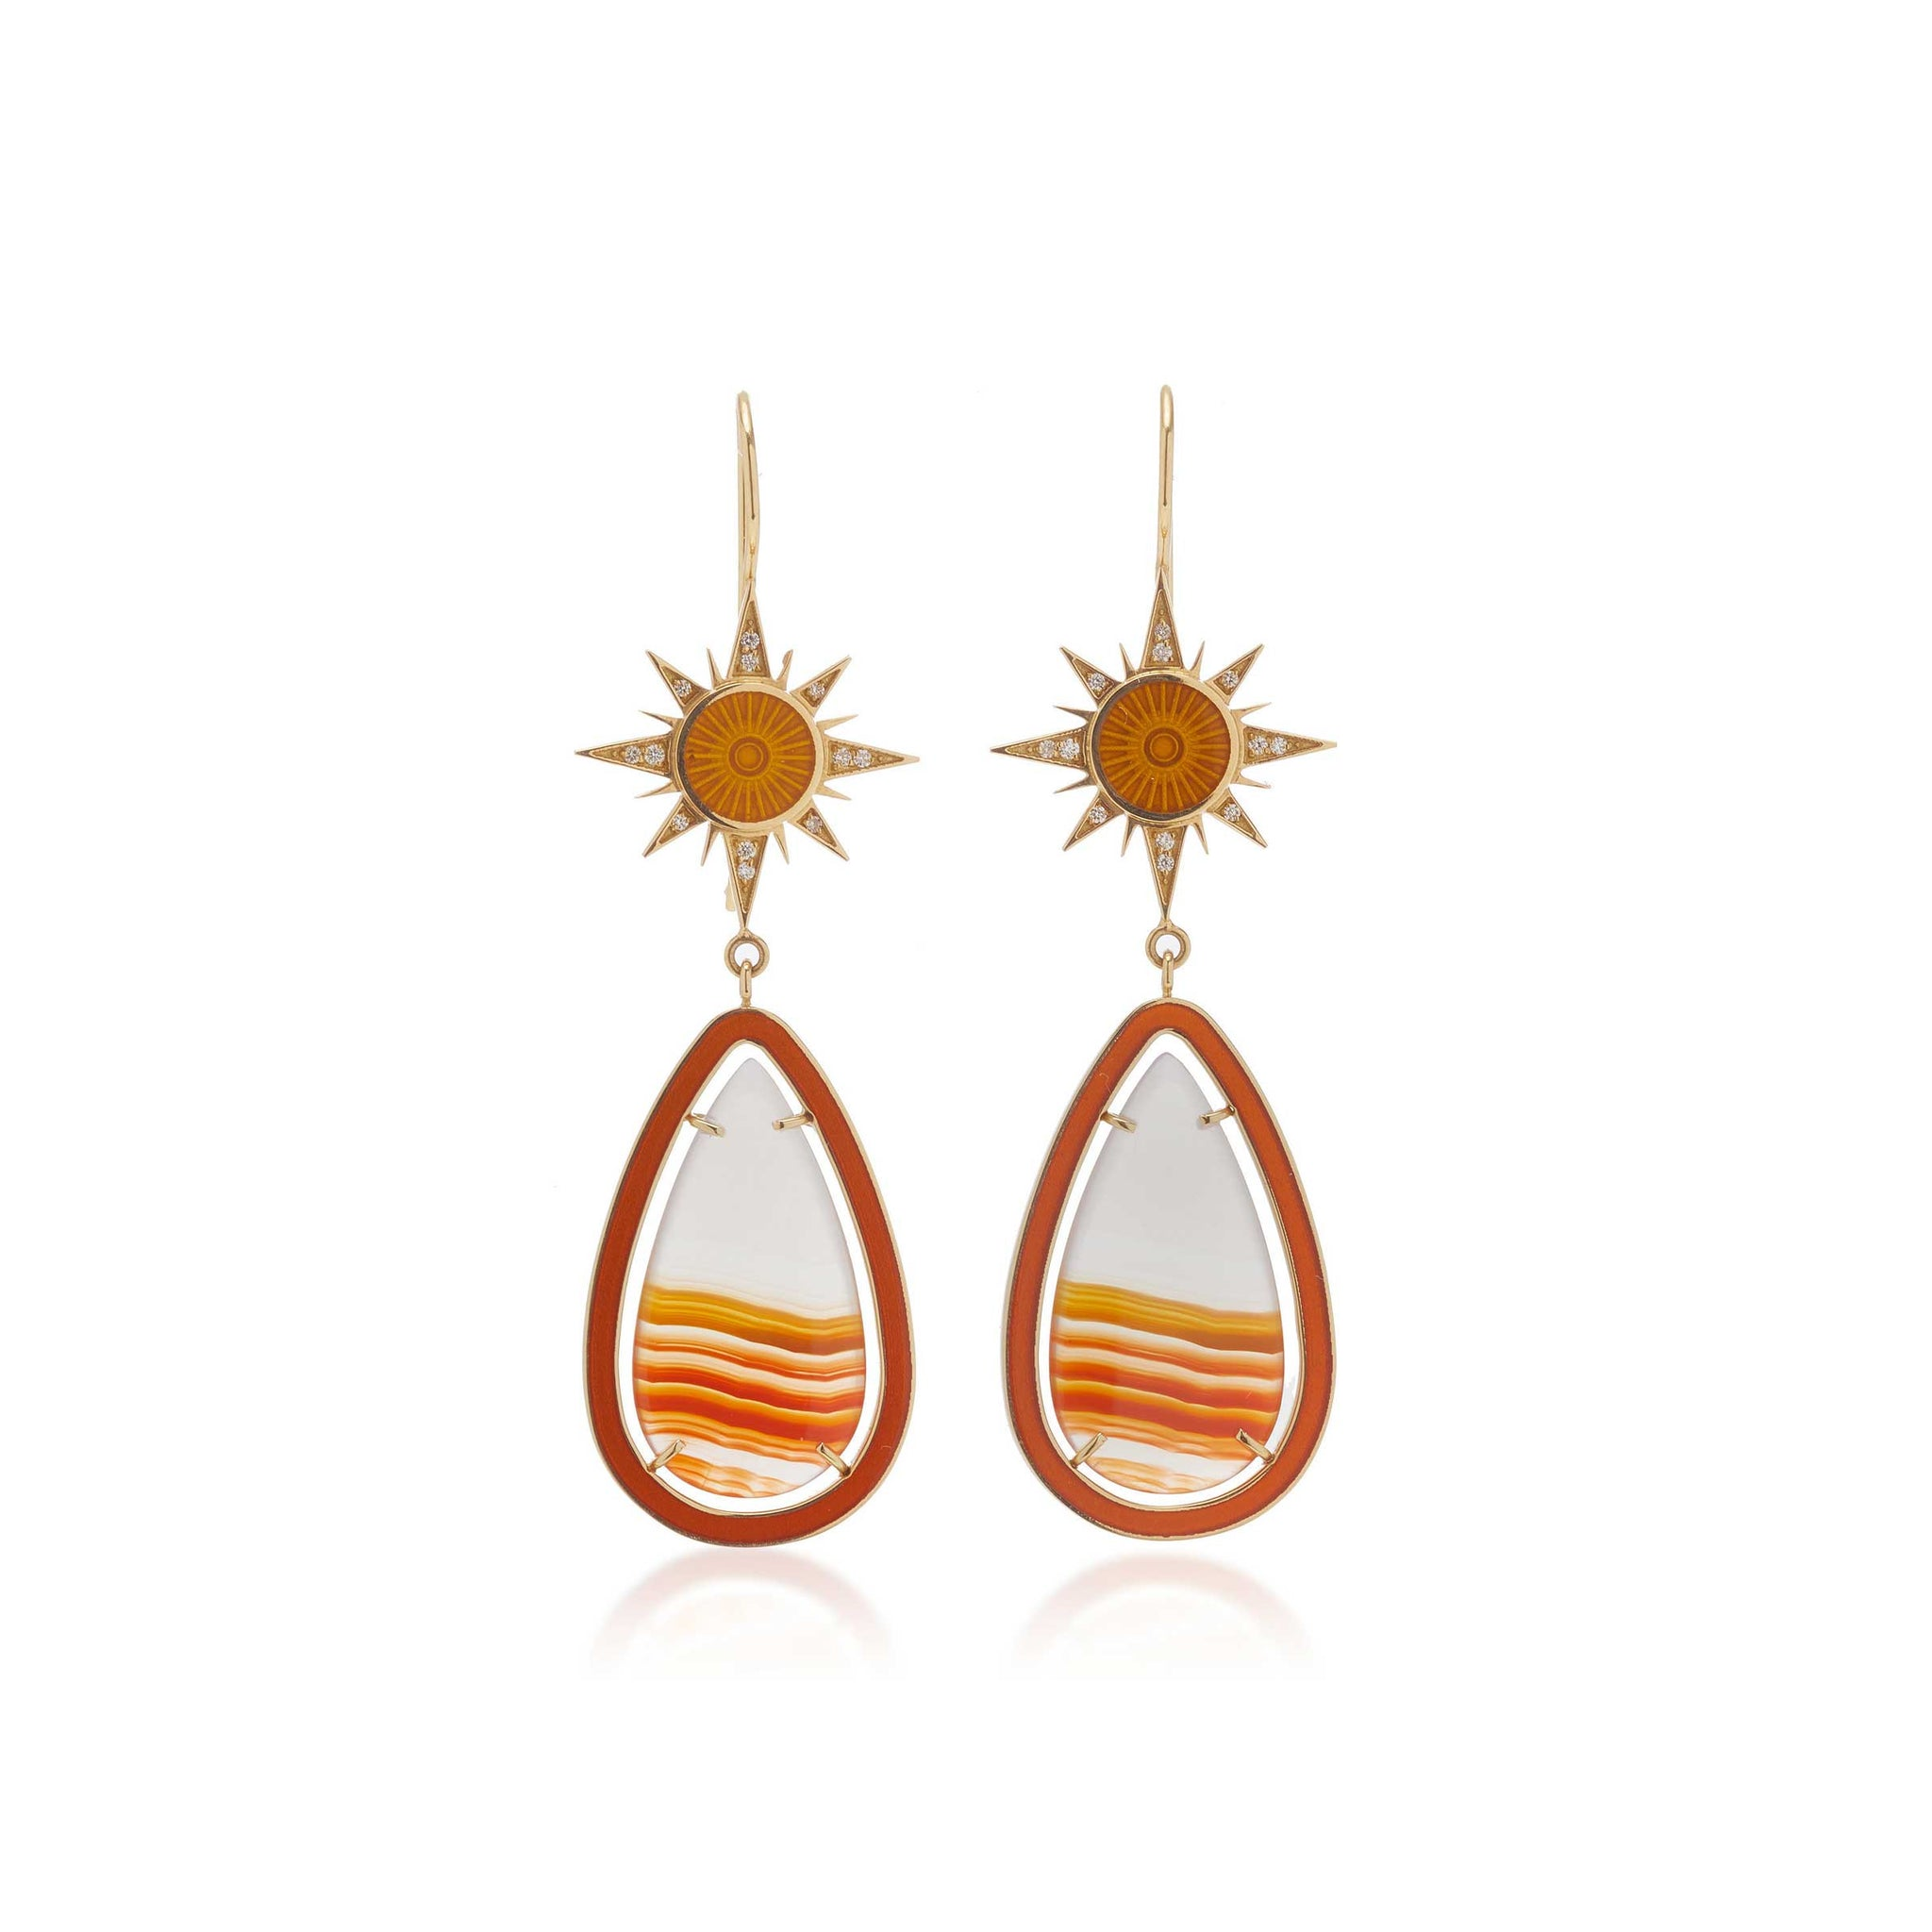 Sunbeam Enamel Earrings